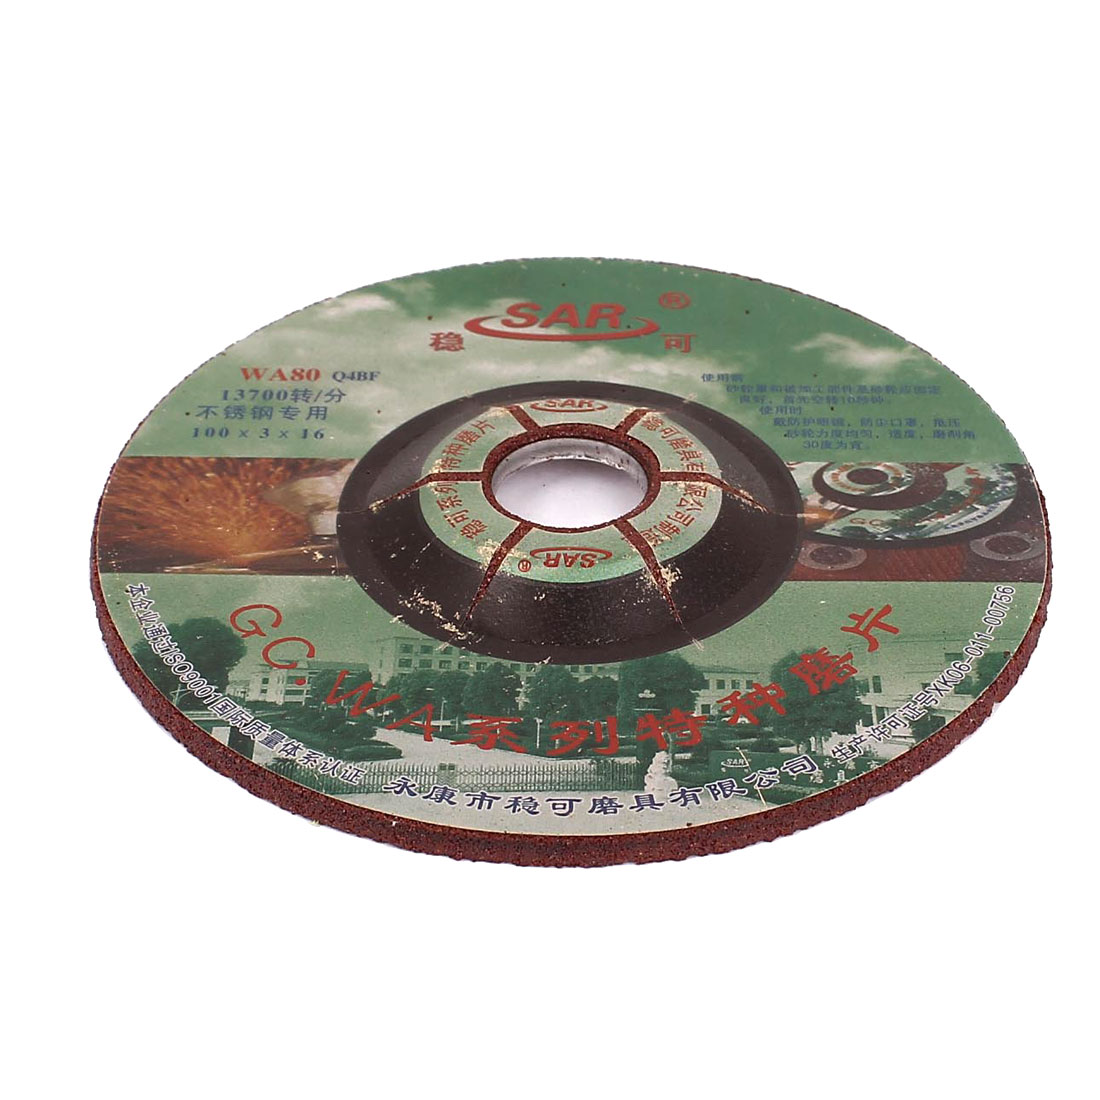 100mm x 16mm x 3mm 80 Grit Abrasives Sanding Disc Stainless Steel Grinding Wheel